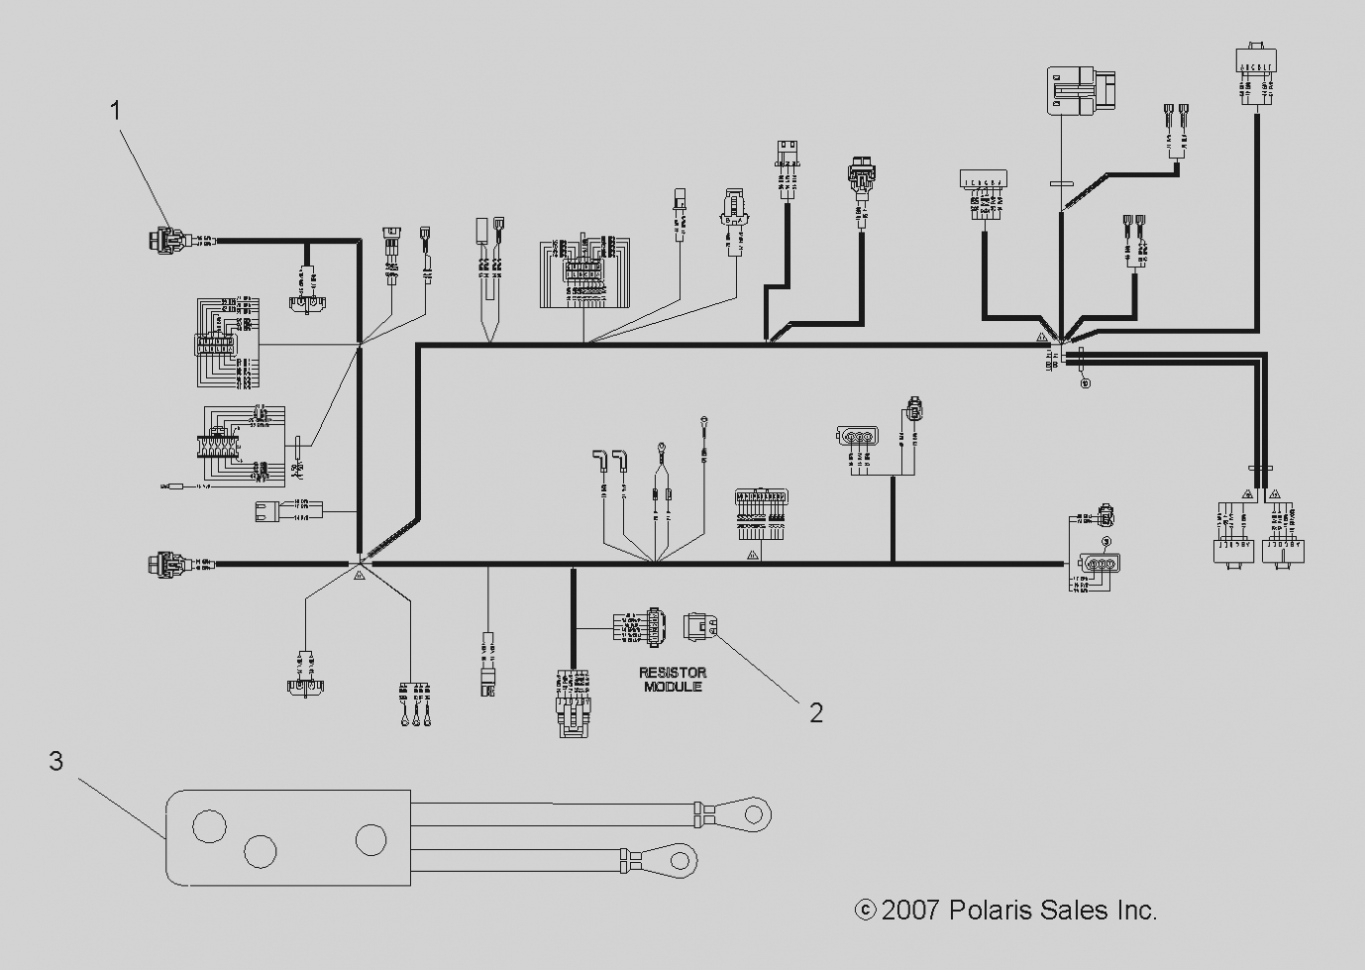 2011 polaris rzr 800 wiring diagram - inspirational 2010 polaris ranger 800  xp wiring diagram 2011